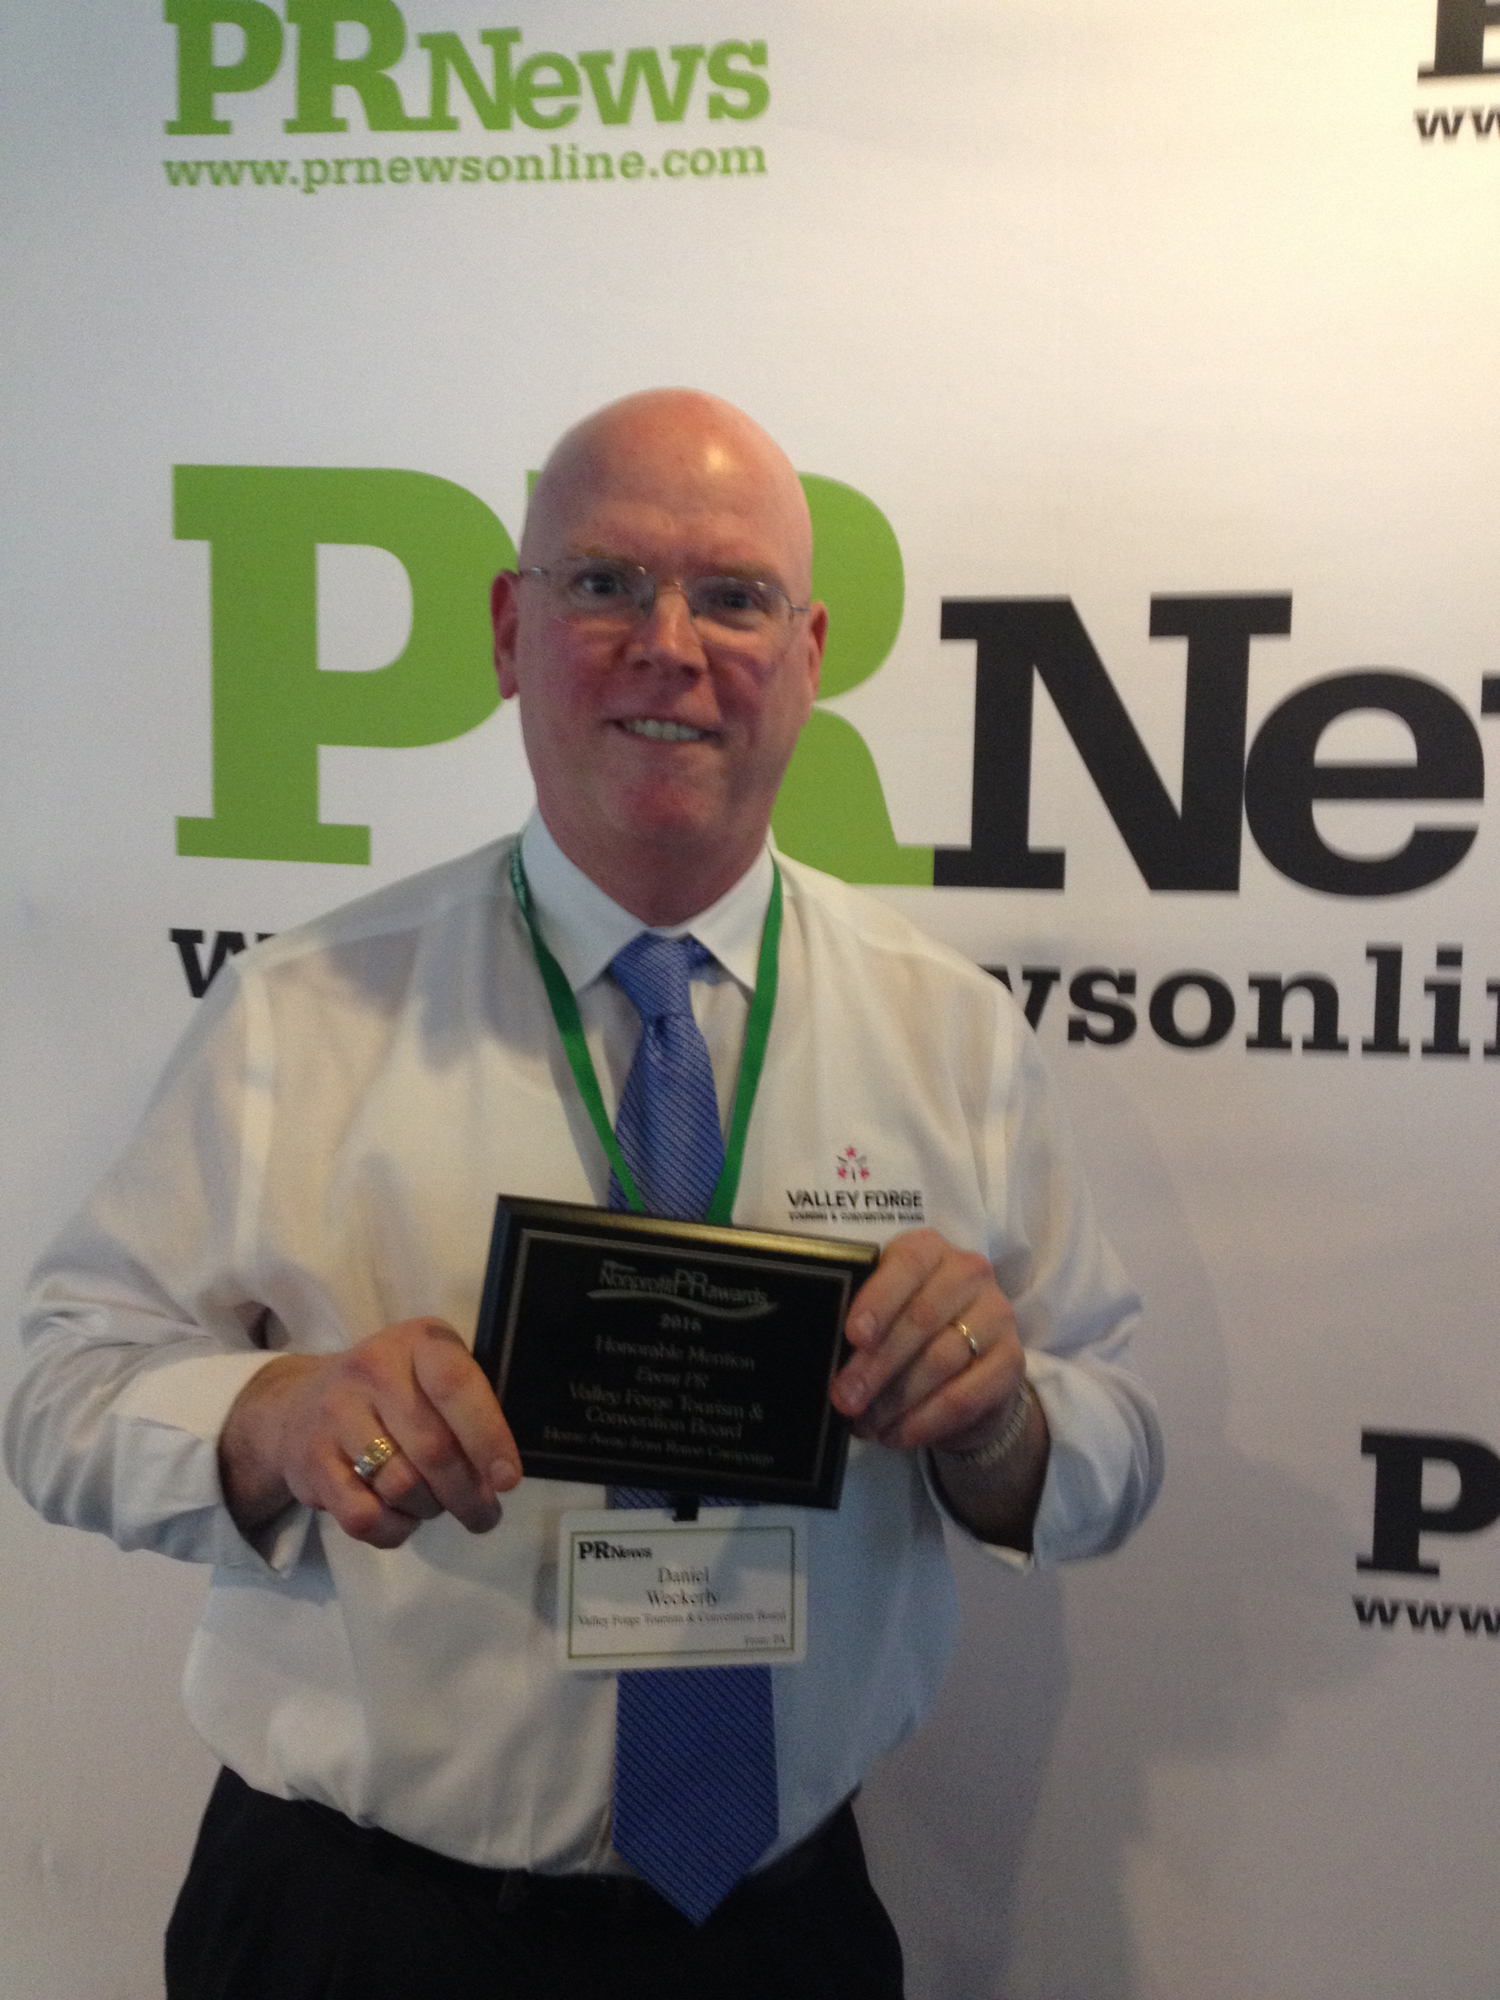 Valley Forge Tourism & Convention Board Communcations Manager Dan Weckerly accepts an award from PR News at the National Press Club in Washington, D.C. The honor was for the VFTCB's campaign associated with the 2015 Papal visit.